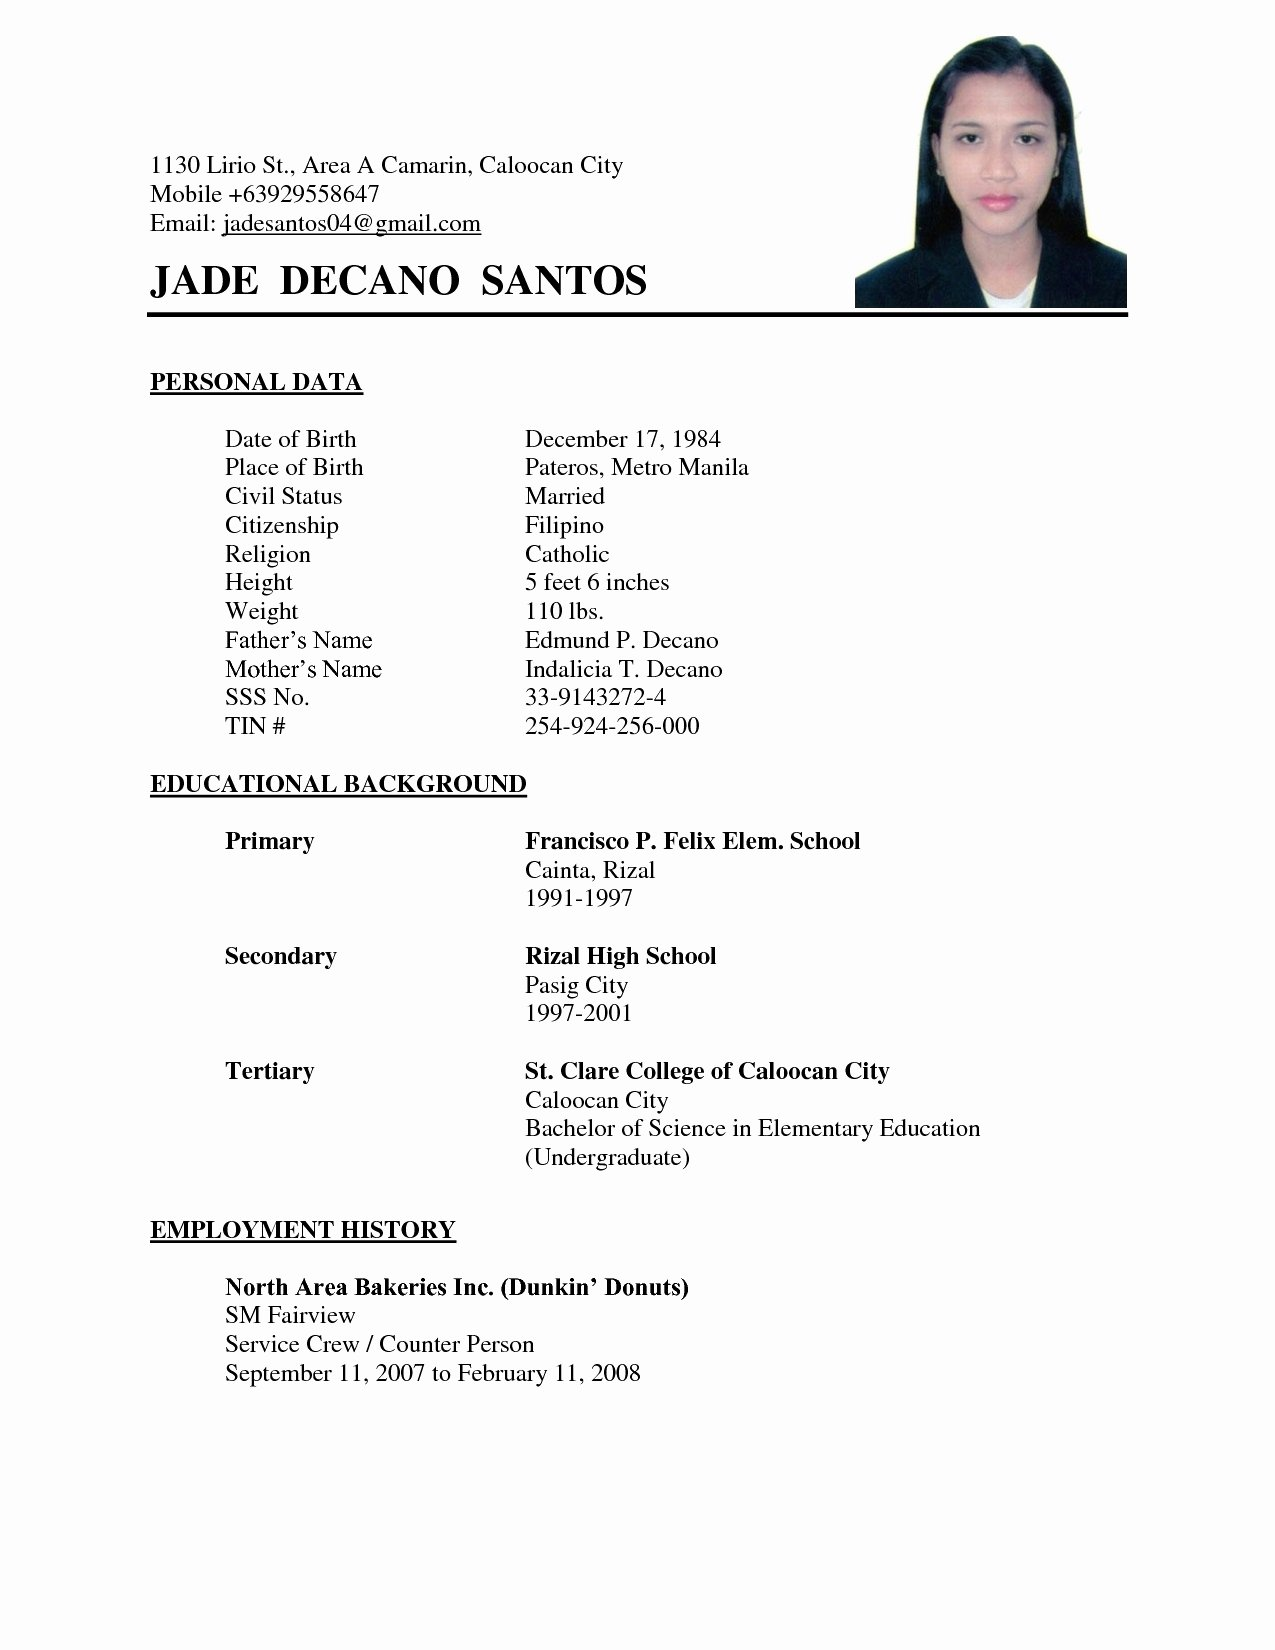 Simple Filipino Resume format